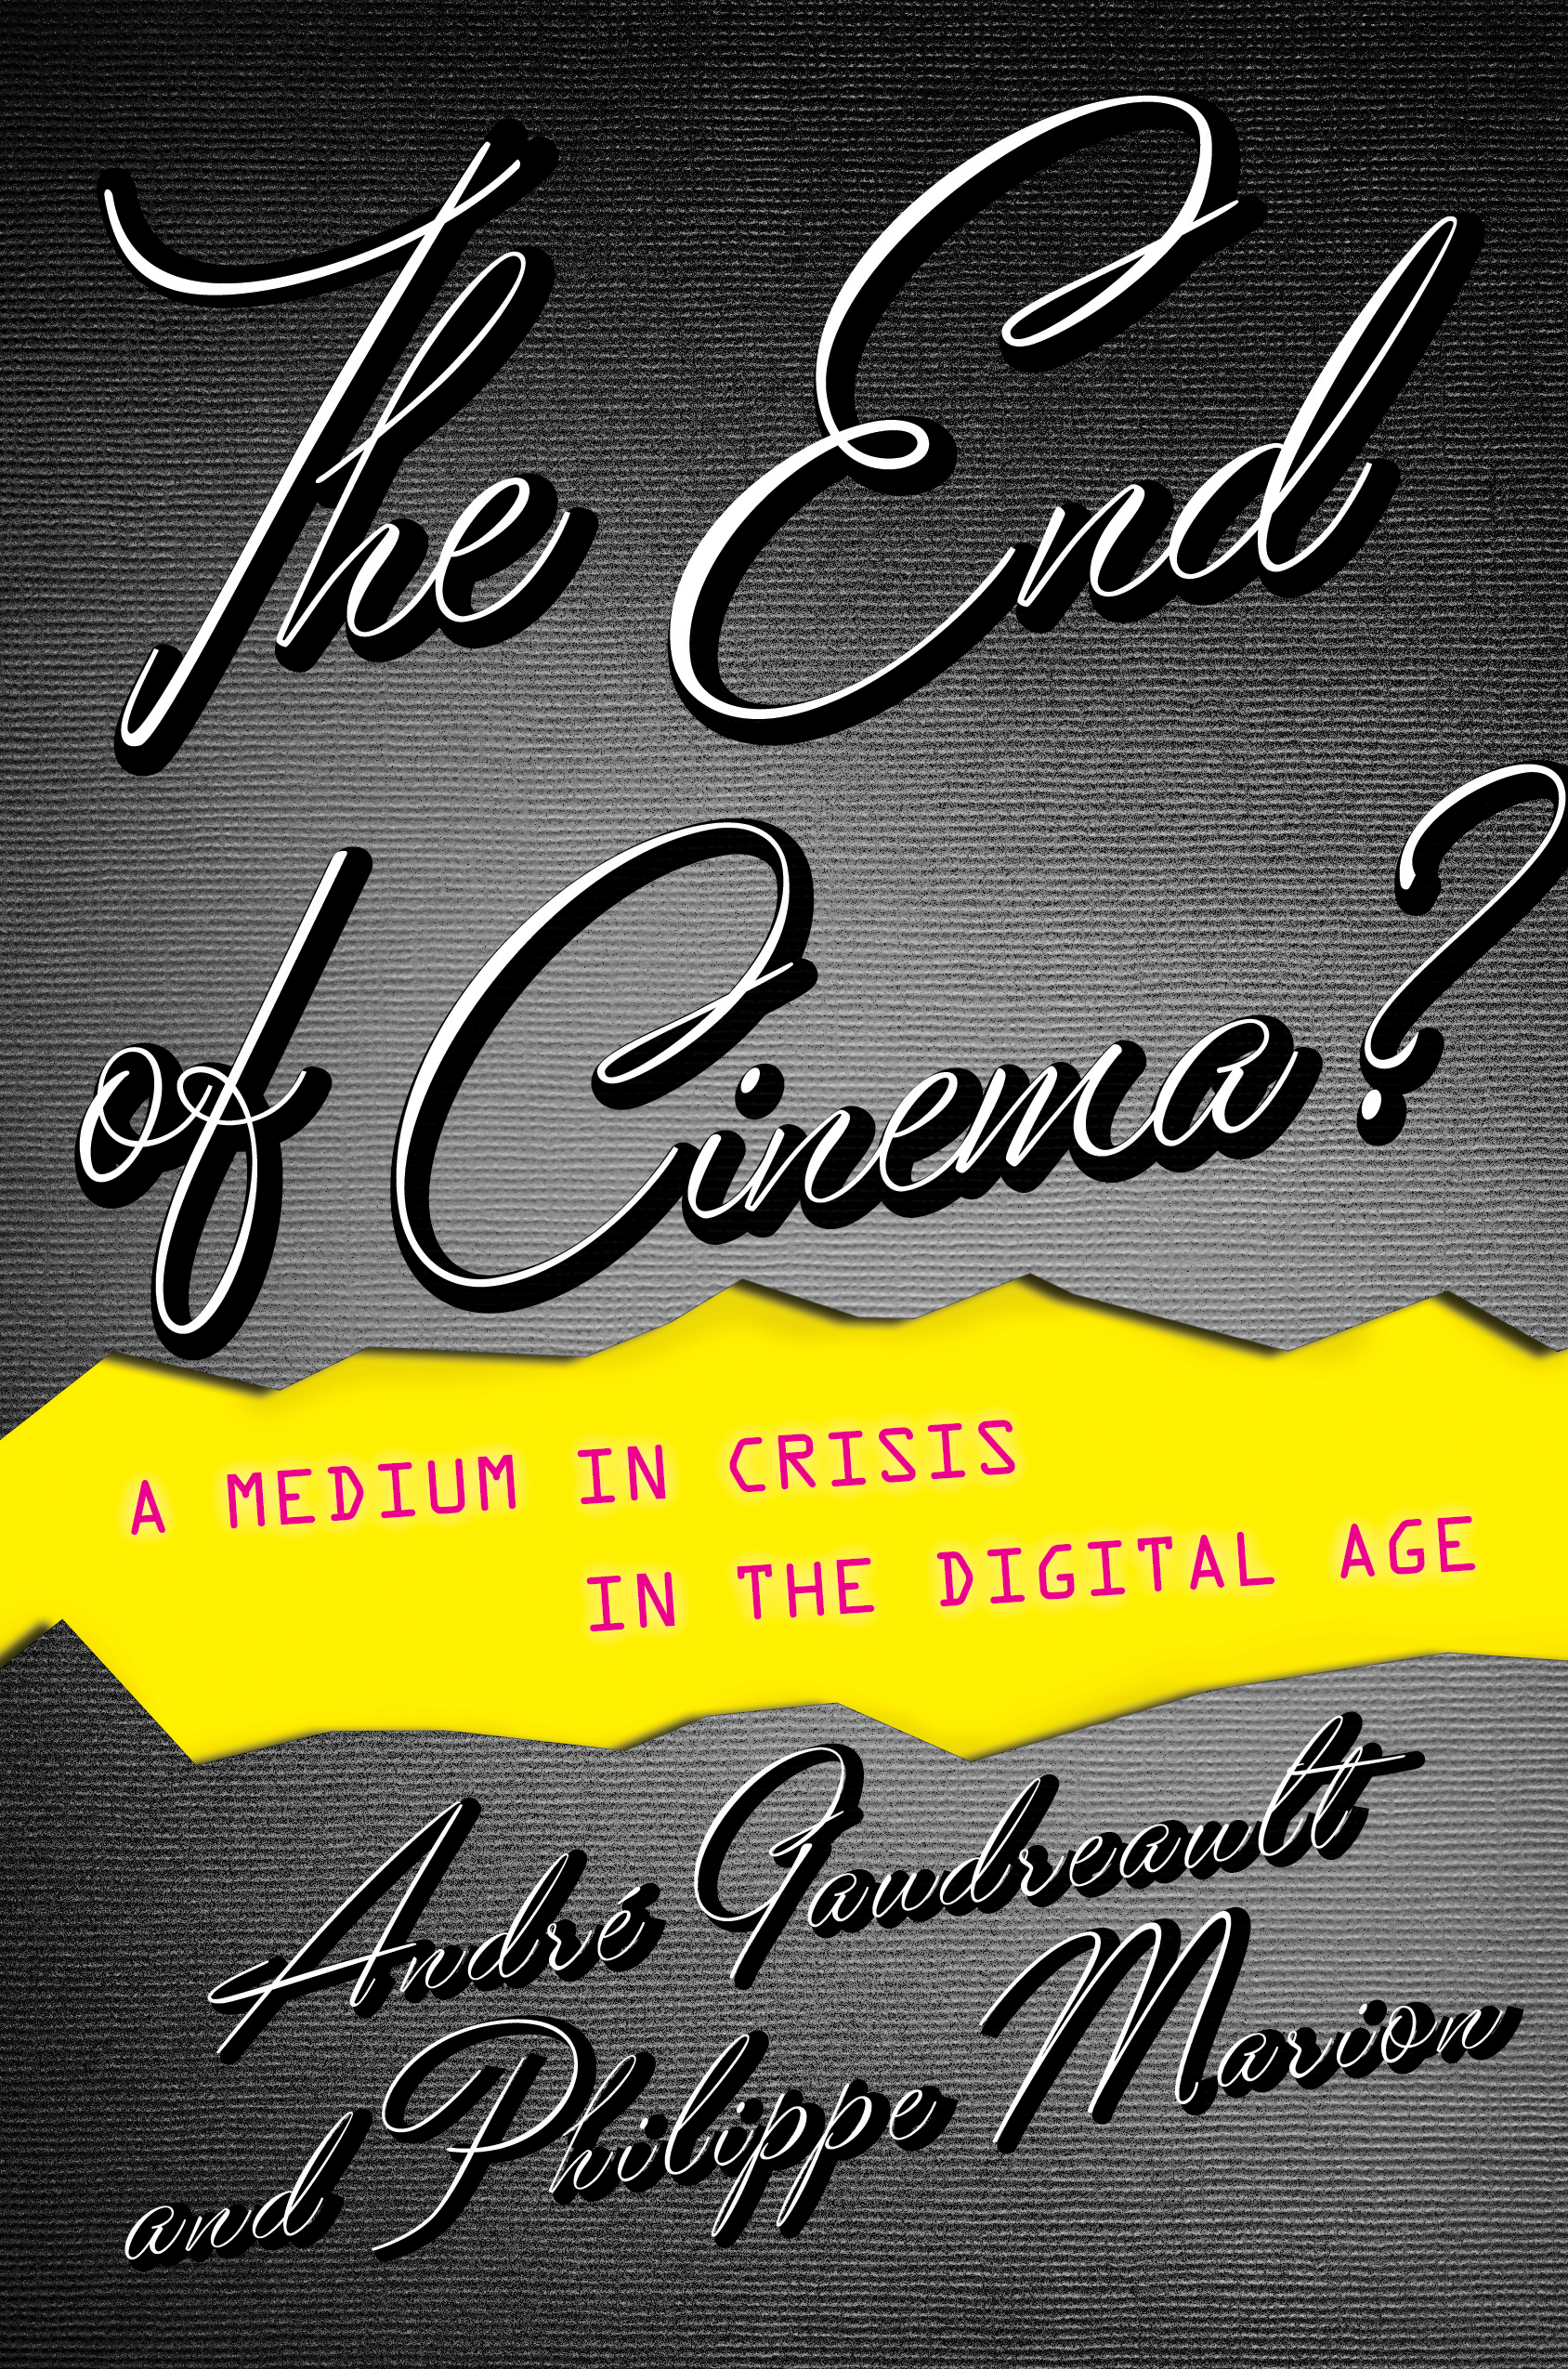 The End of Cinema?